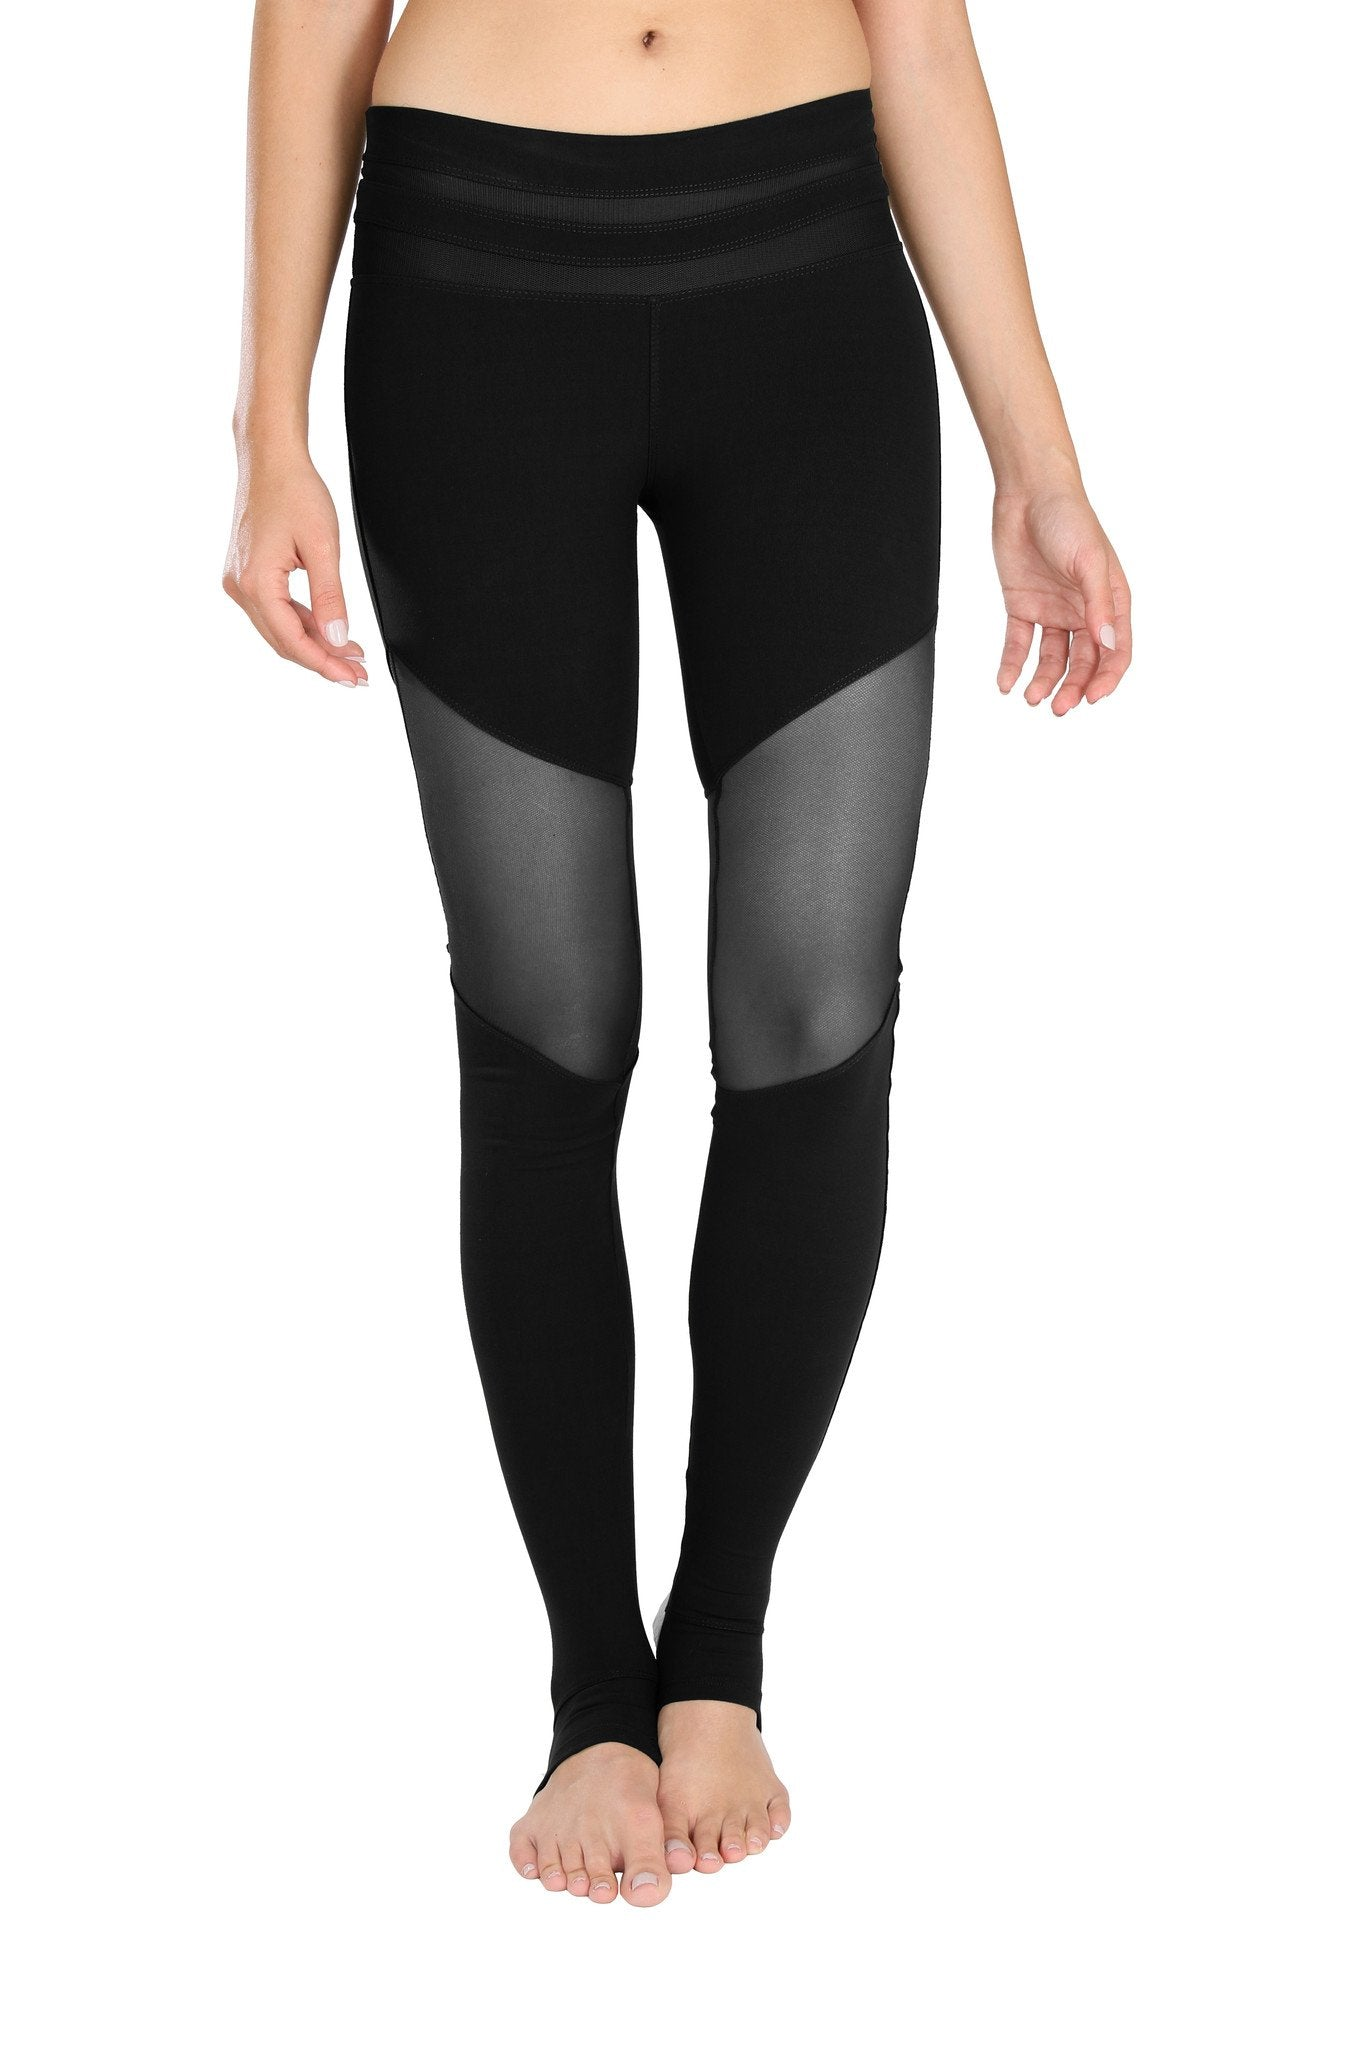 The Brooklyn Mesh Legging